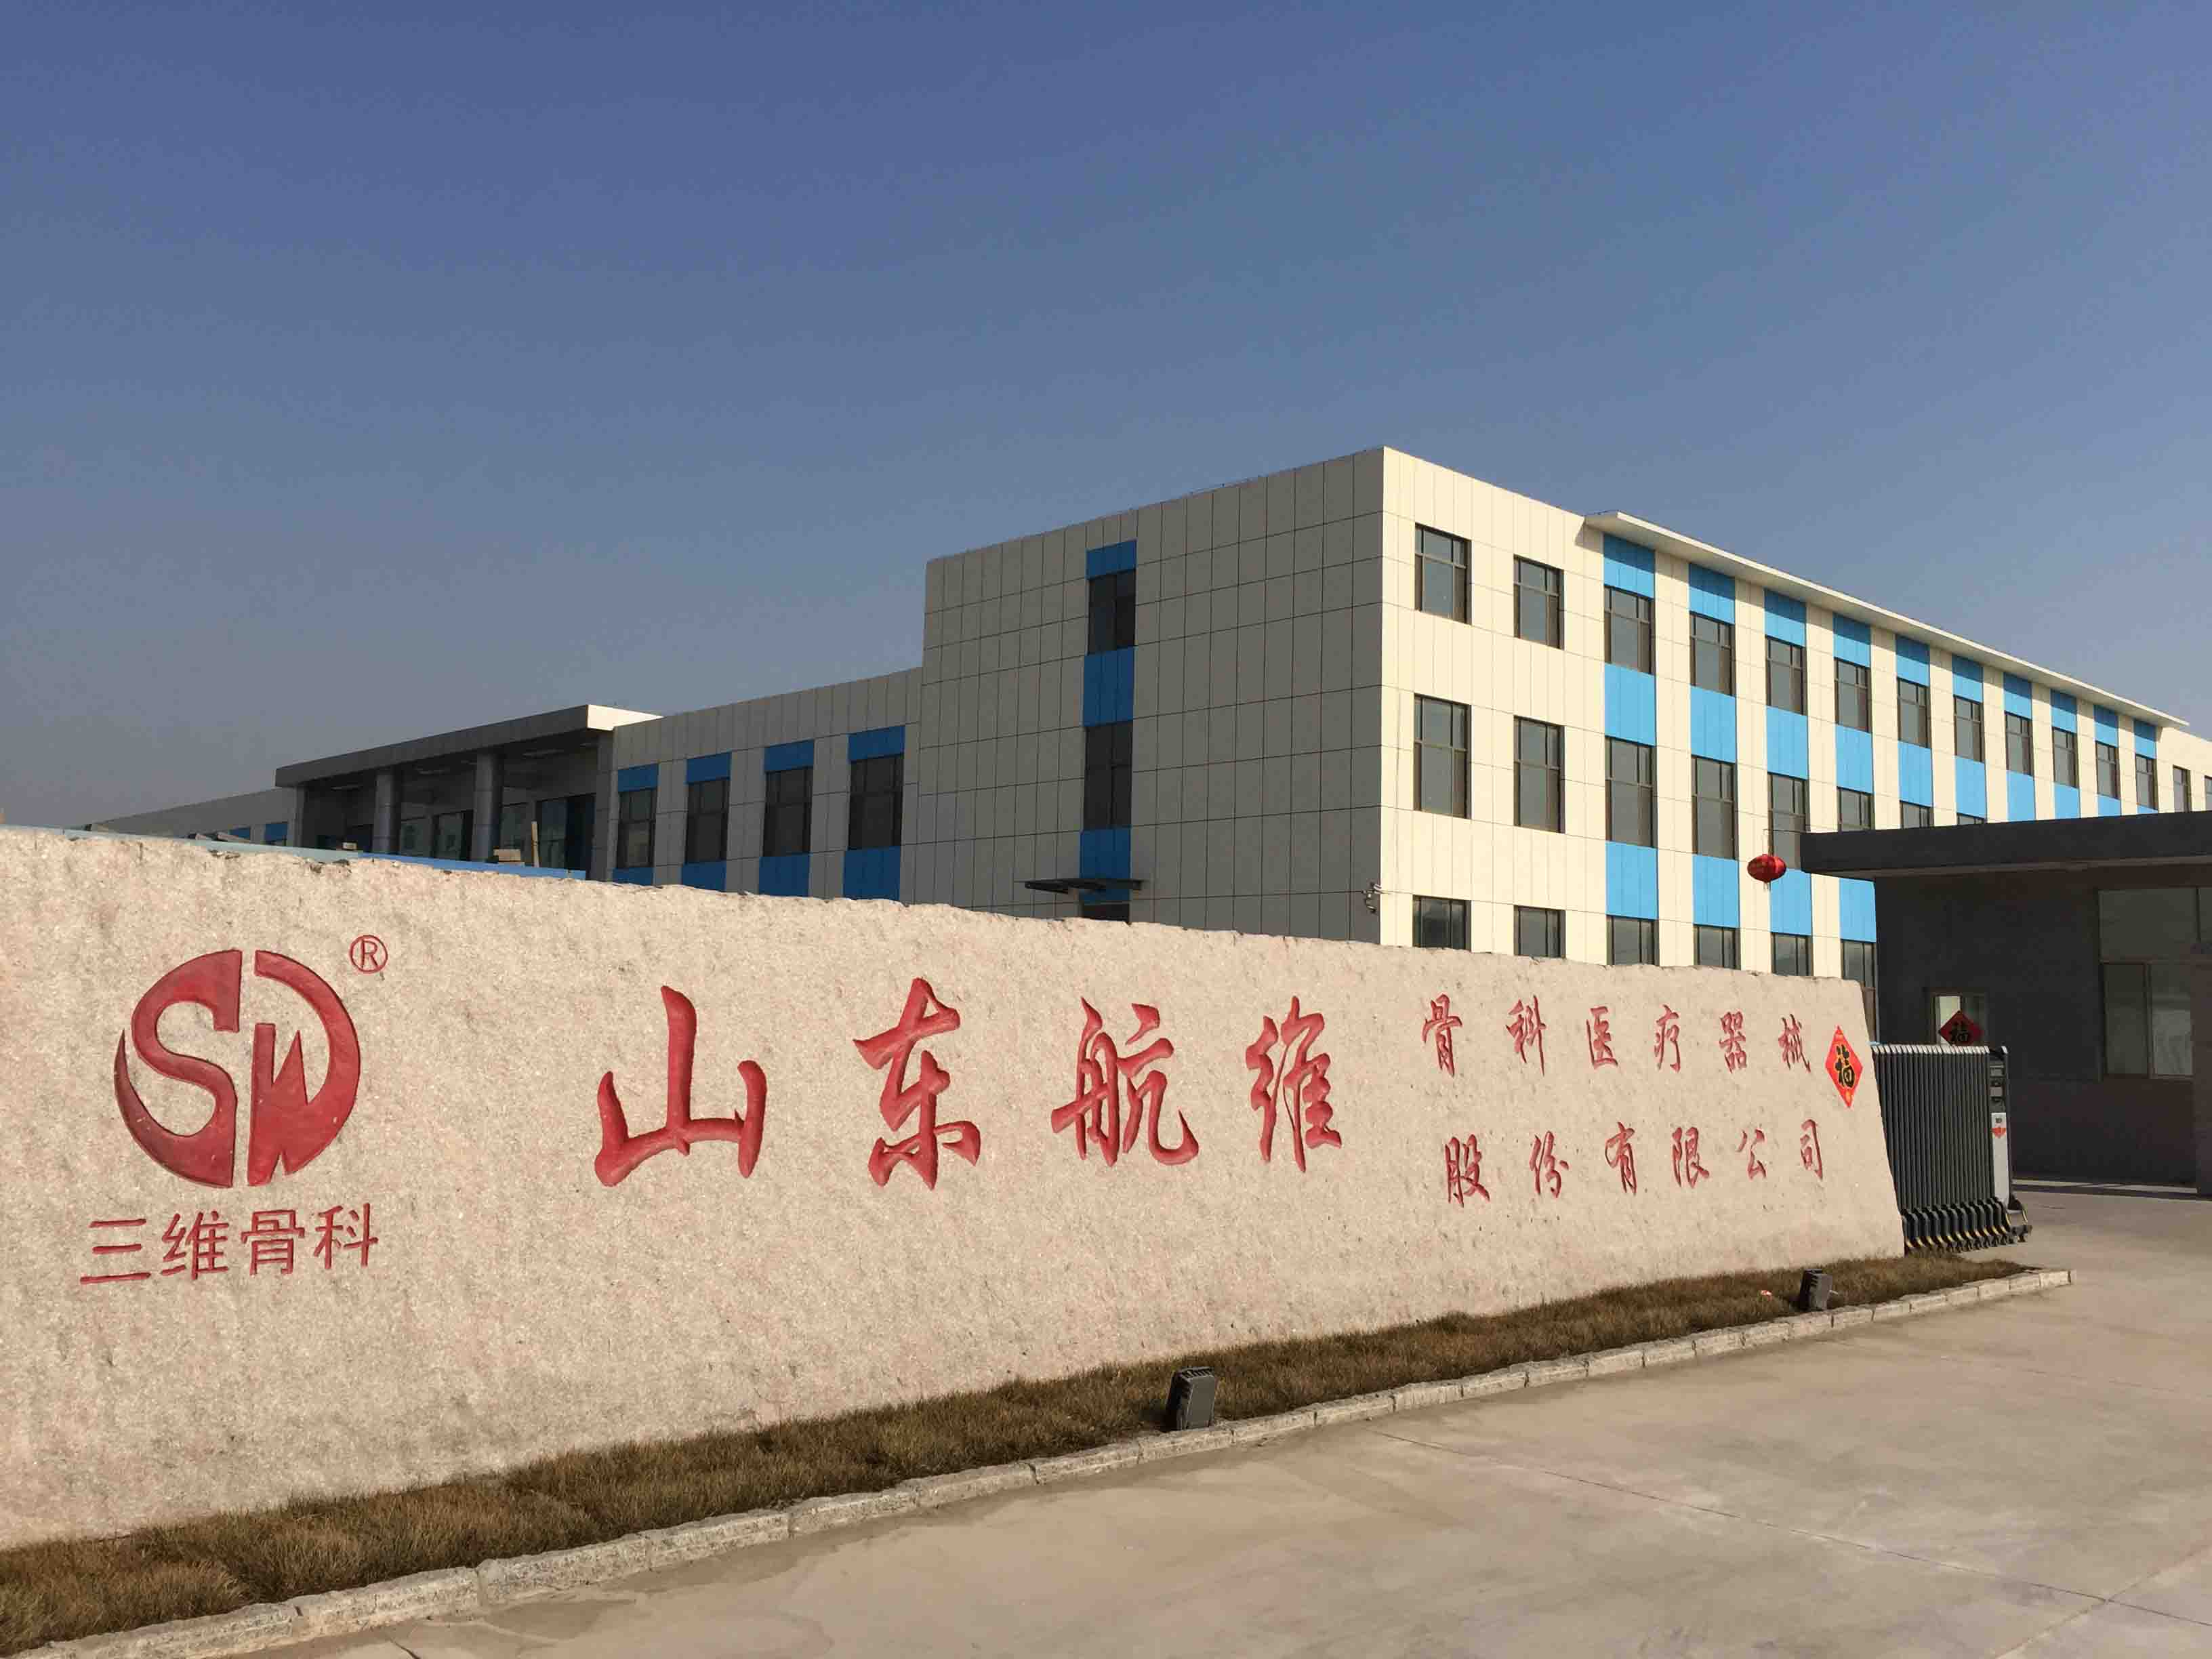 Shandong Hangwei Orthopedics Medcial Instrument Co., Ltd.